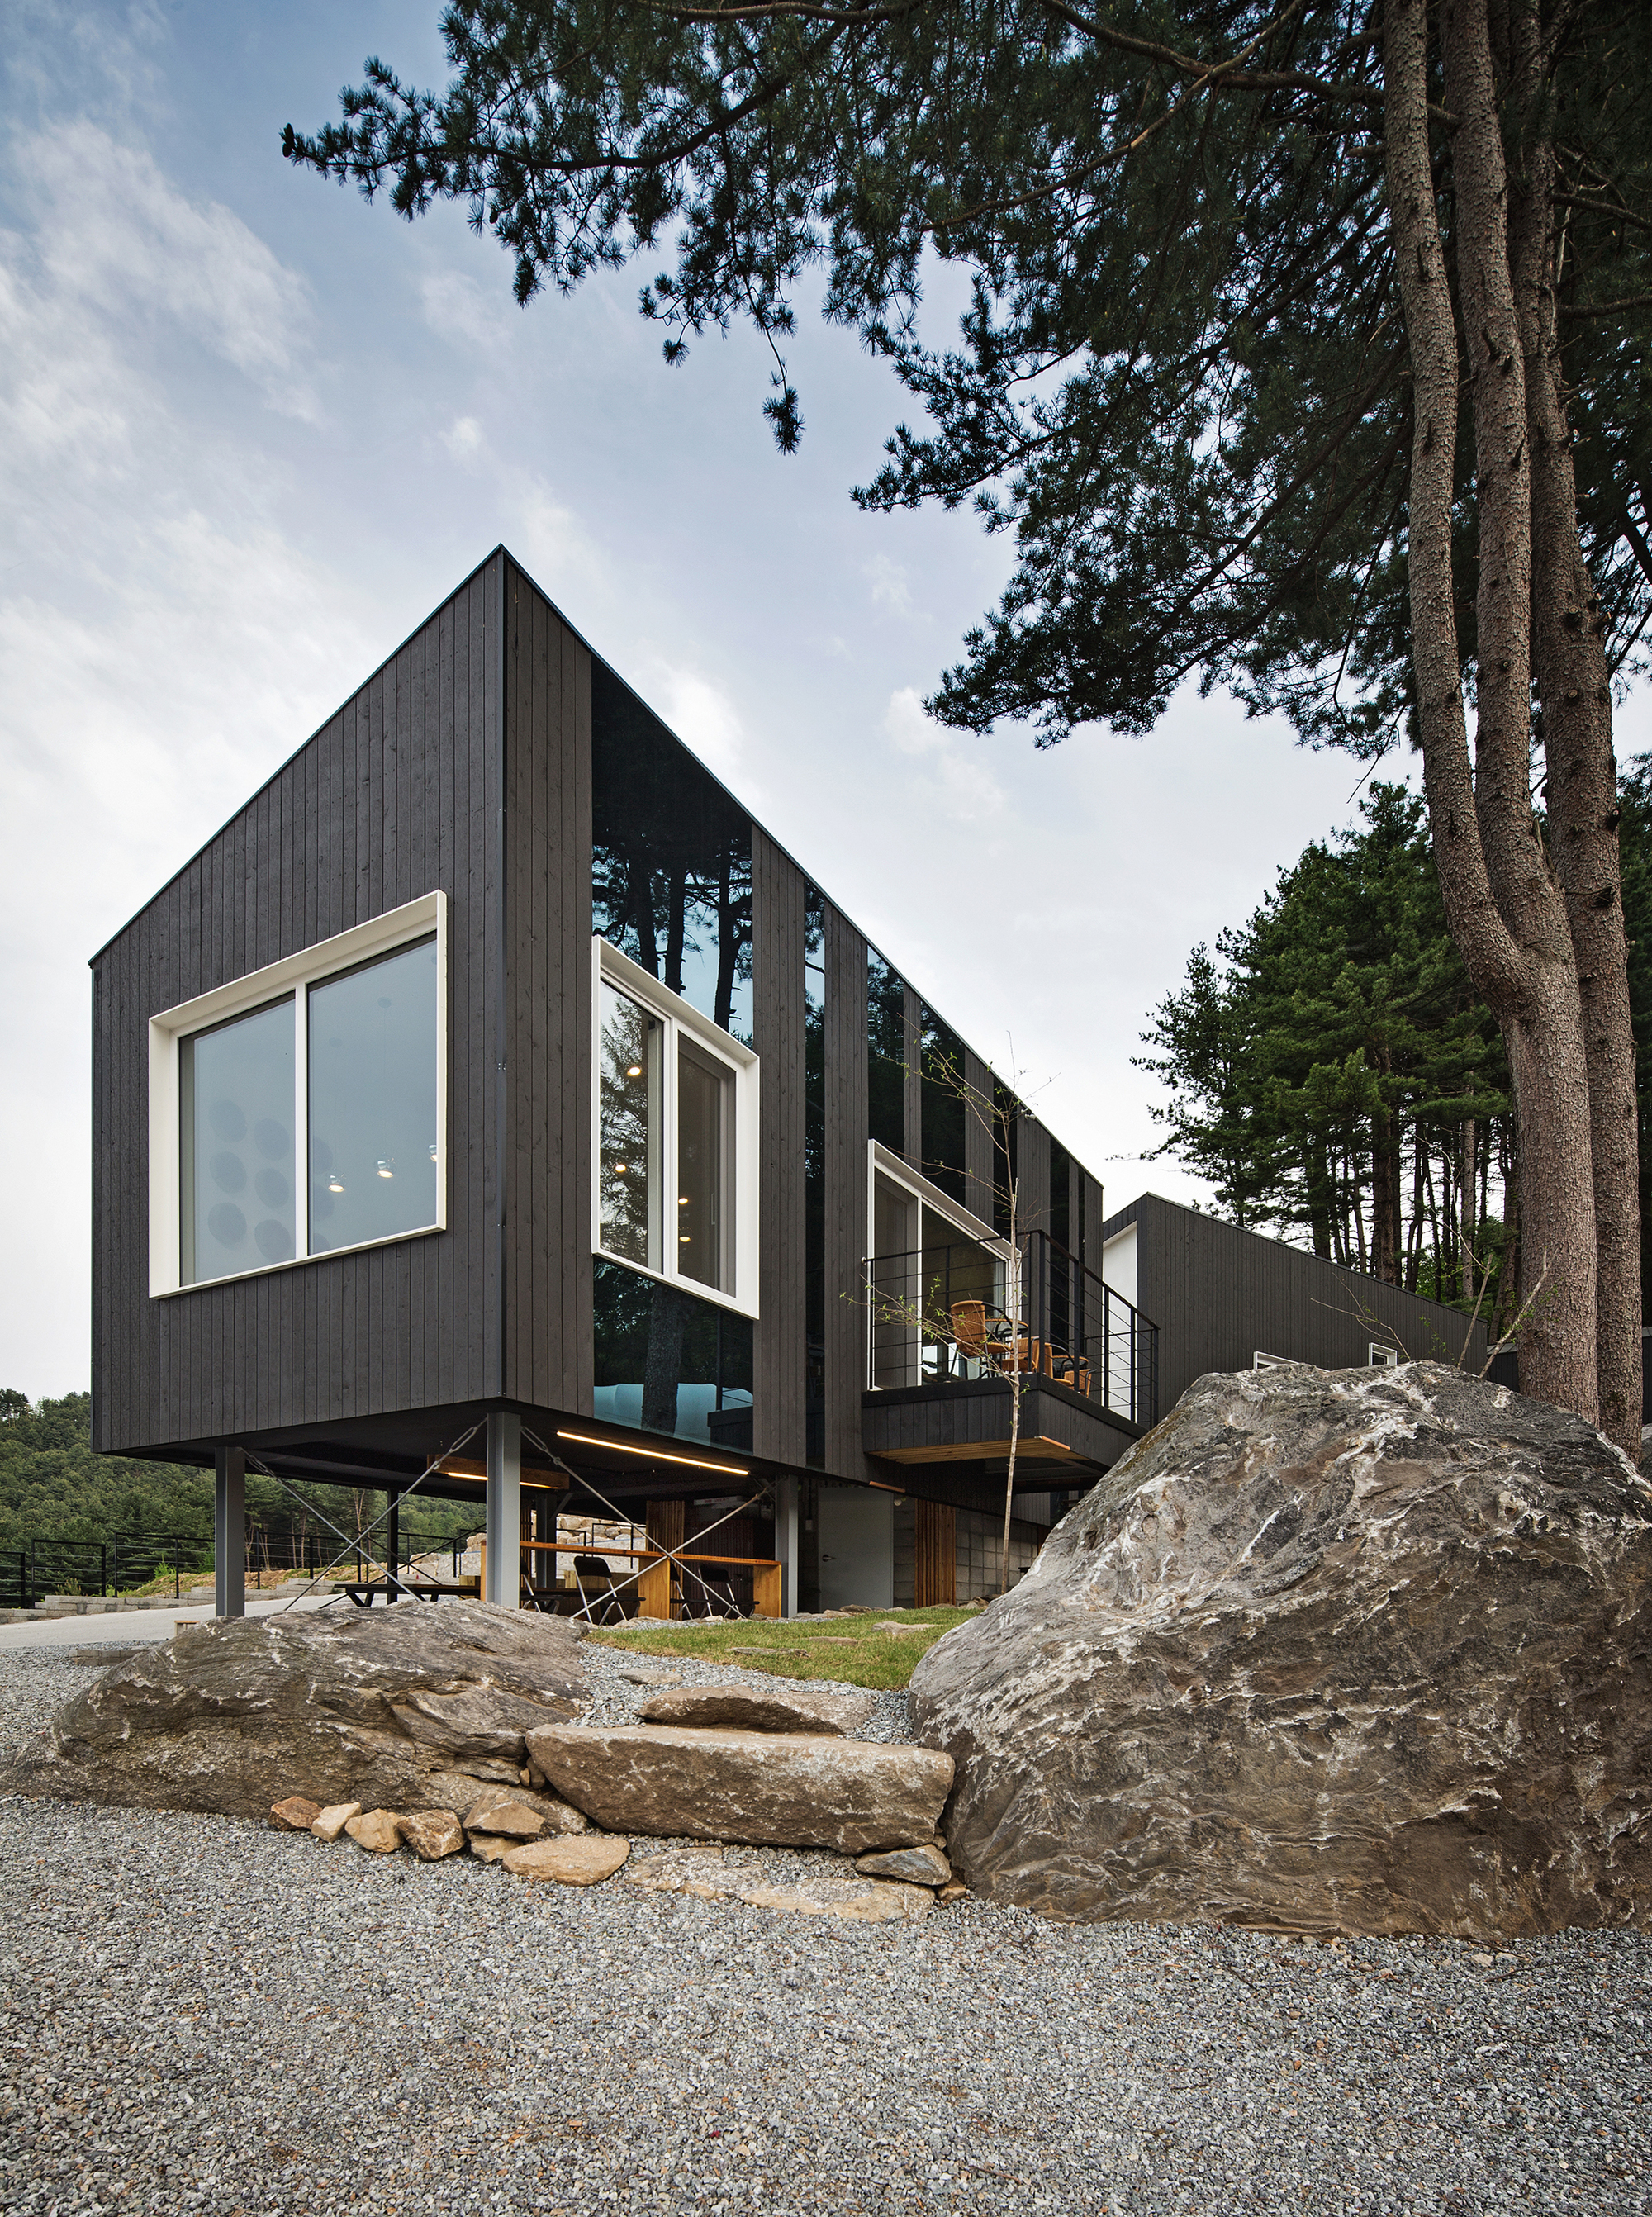 Glamping on the Rock / ArchiWorkshop